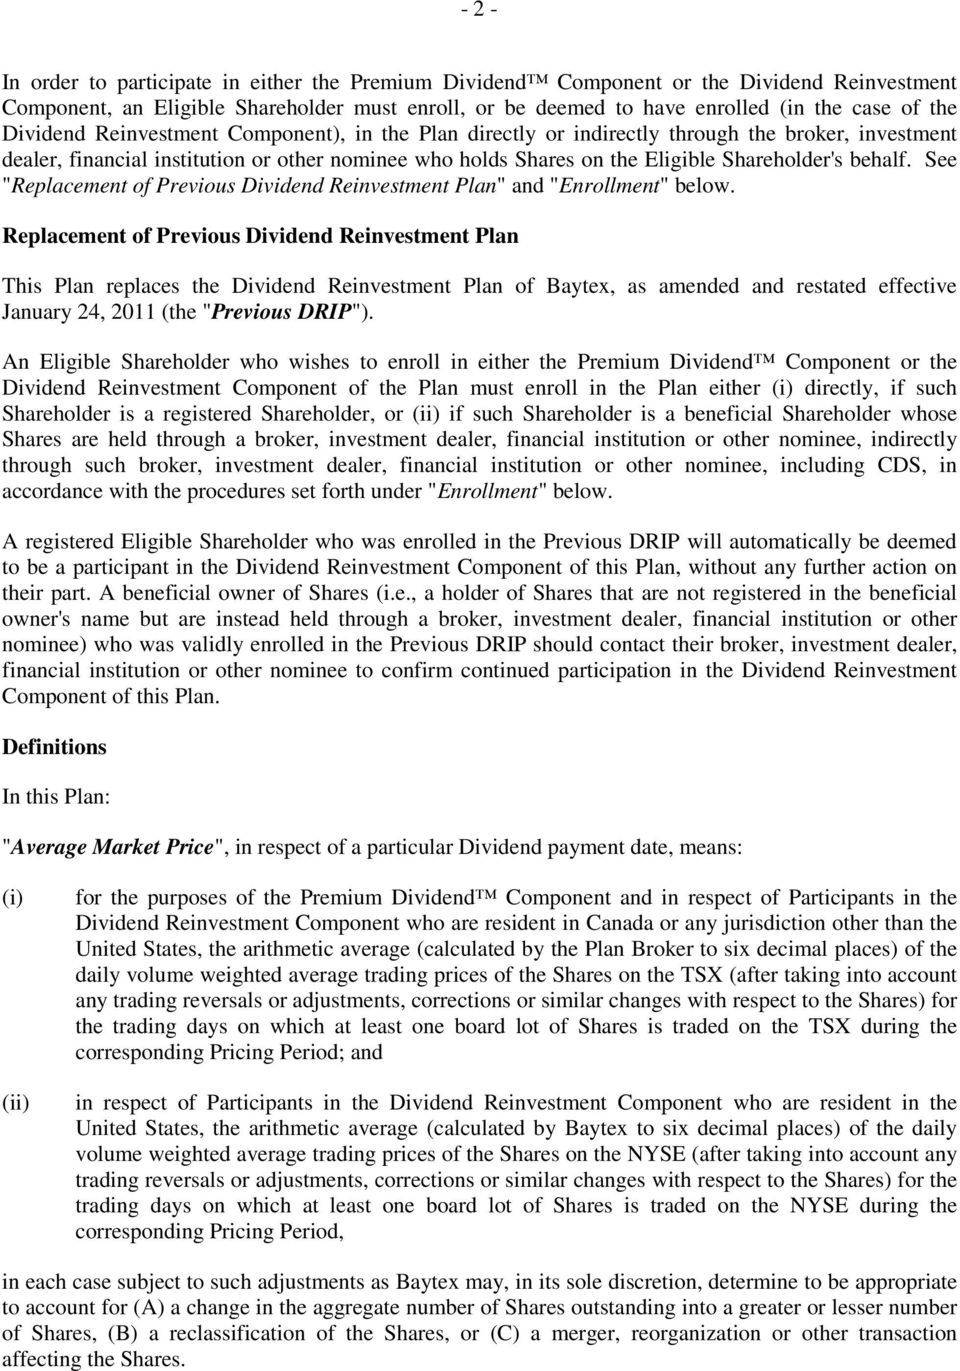 "behalf. See ""Replacement of Previous Dividend Reinvestment Plan"" and ""Enrollment"" below."